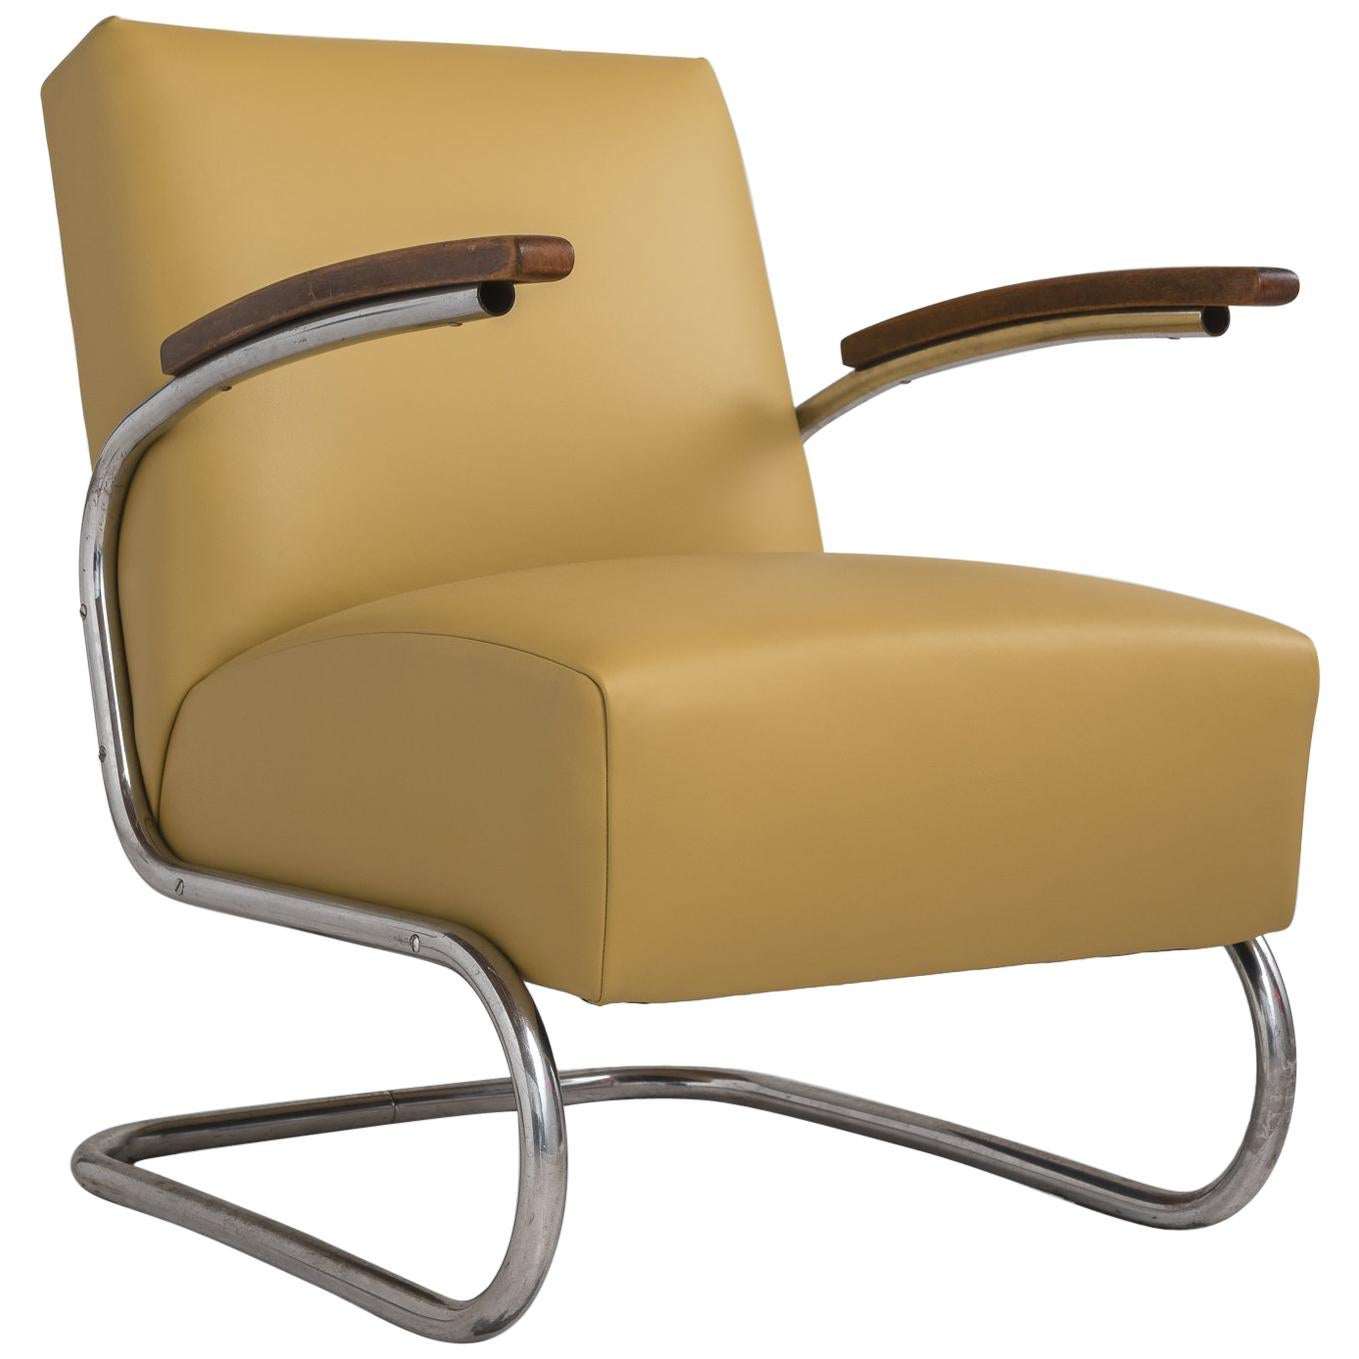 Modern leather armchair Retro Leather Thonet Modern Leather Armchair Germany Circa 1930 For Sale 1stdibs Thonet Modern Leather Armchair Germany Circa 1930 For Sale At 1stdibs